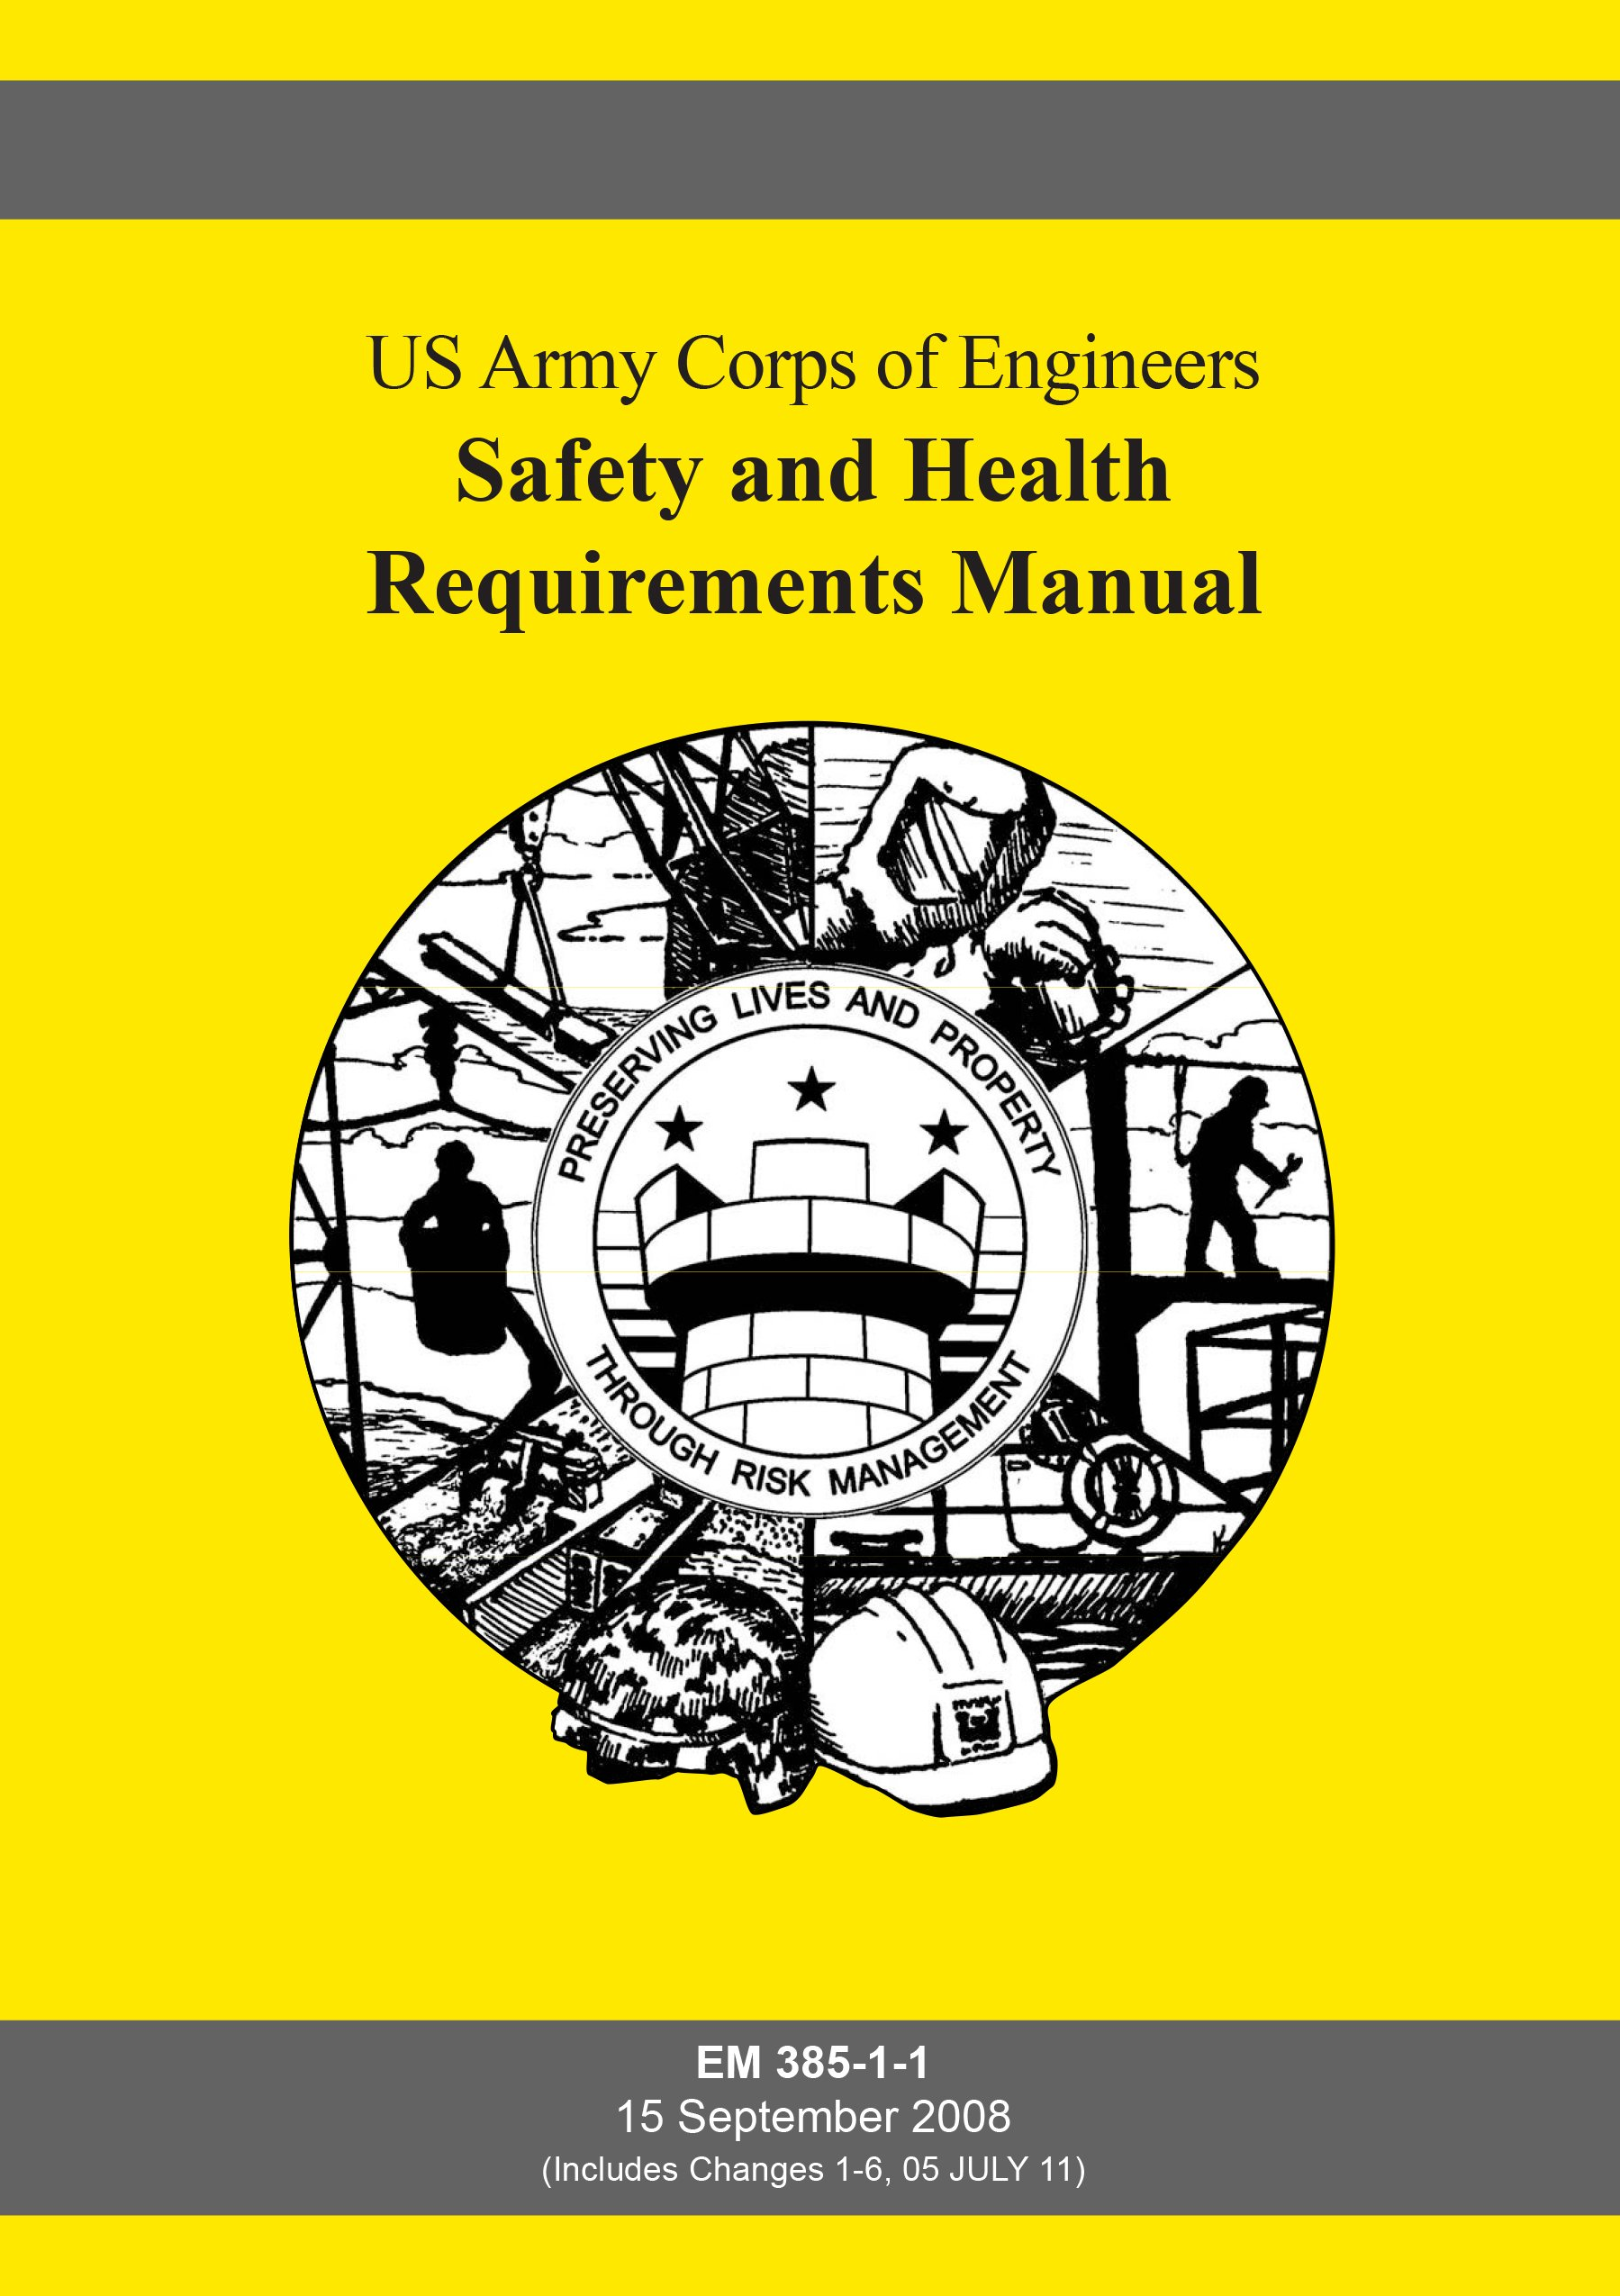 by us army corps of engineers safety and health requirements manual rh amazon com em 385-1-1 manual 2008 em 385-1-1 manual 2014 pdf